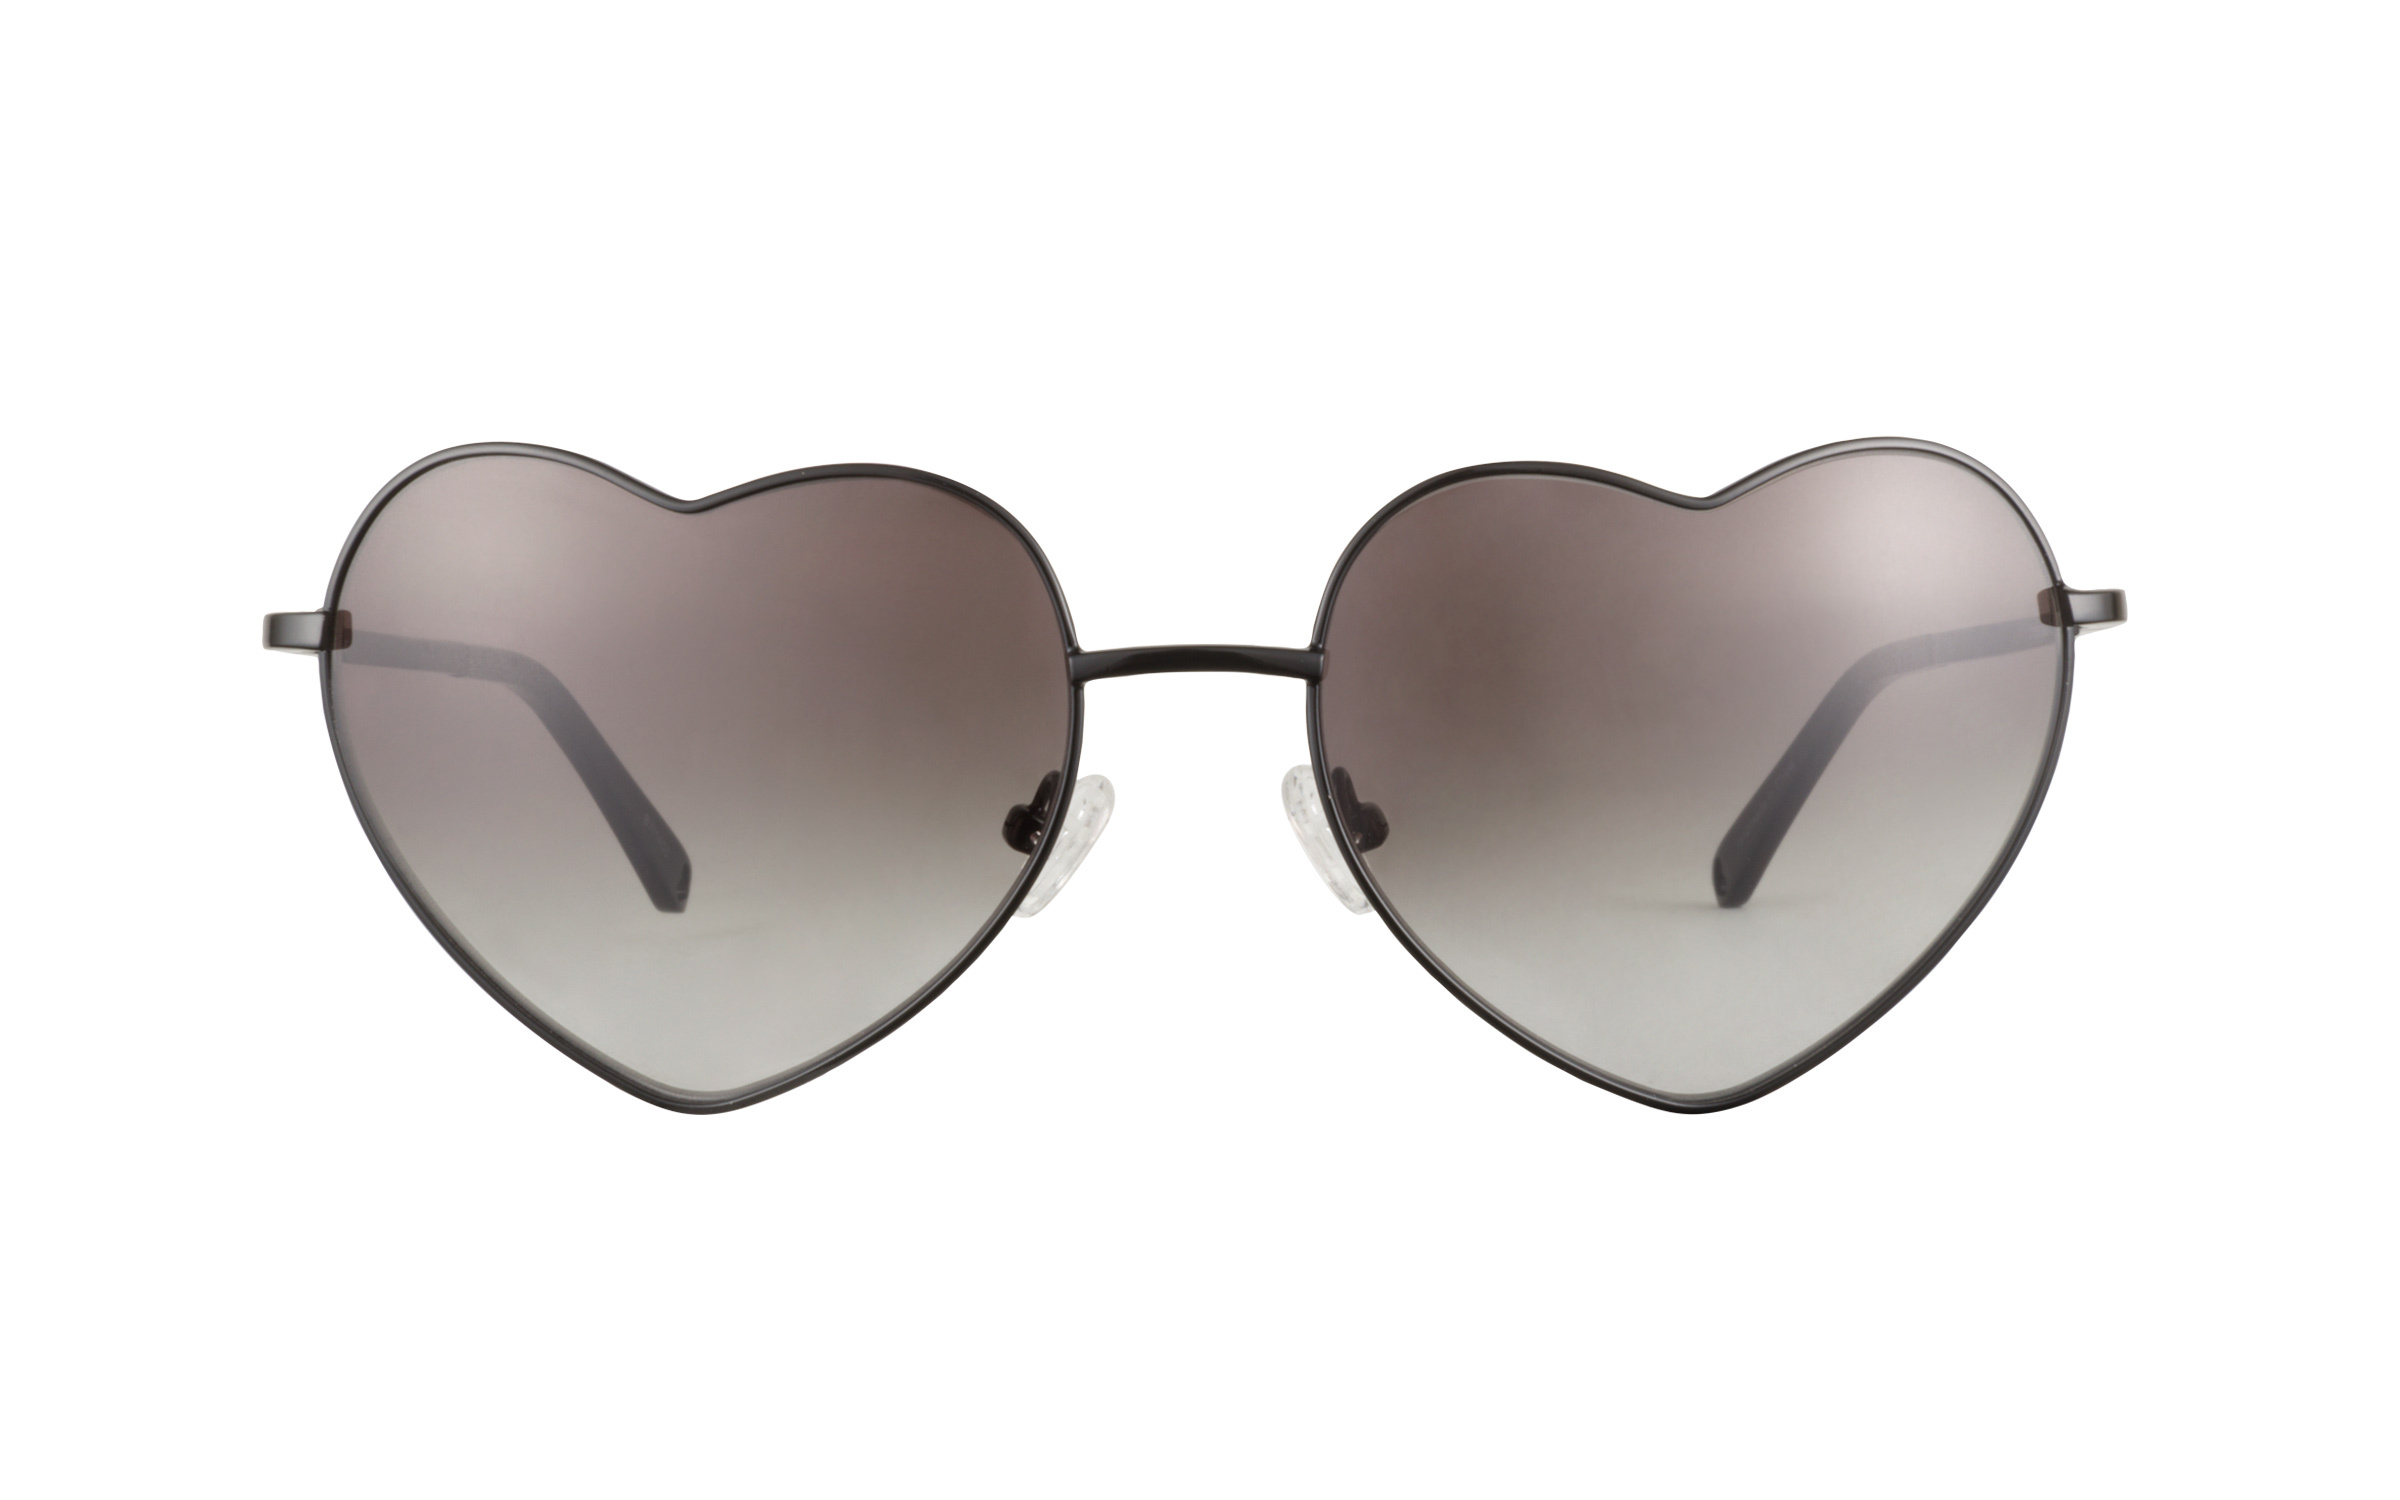 Black_Metal_Love_Sunglasses__Clearly_Glasses_Online